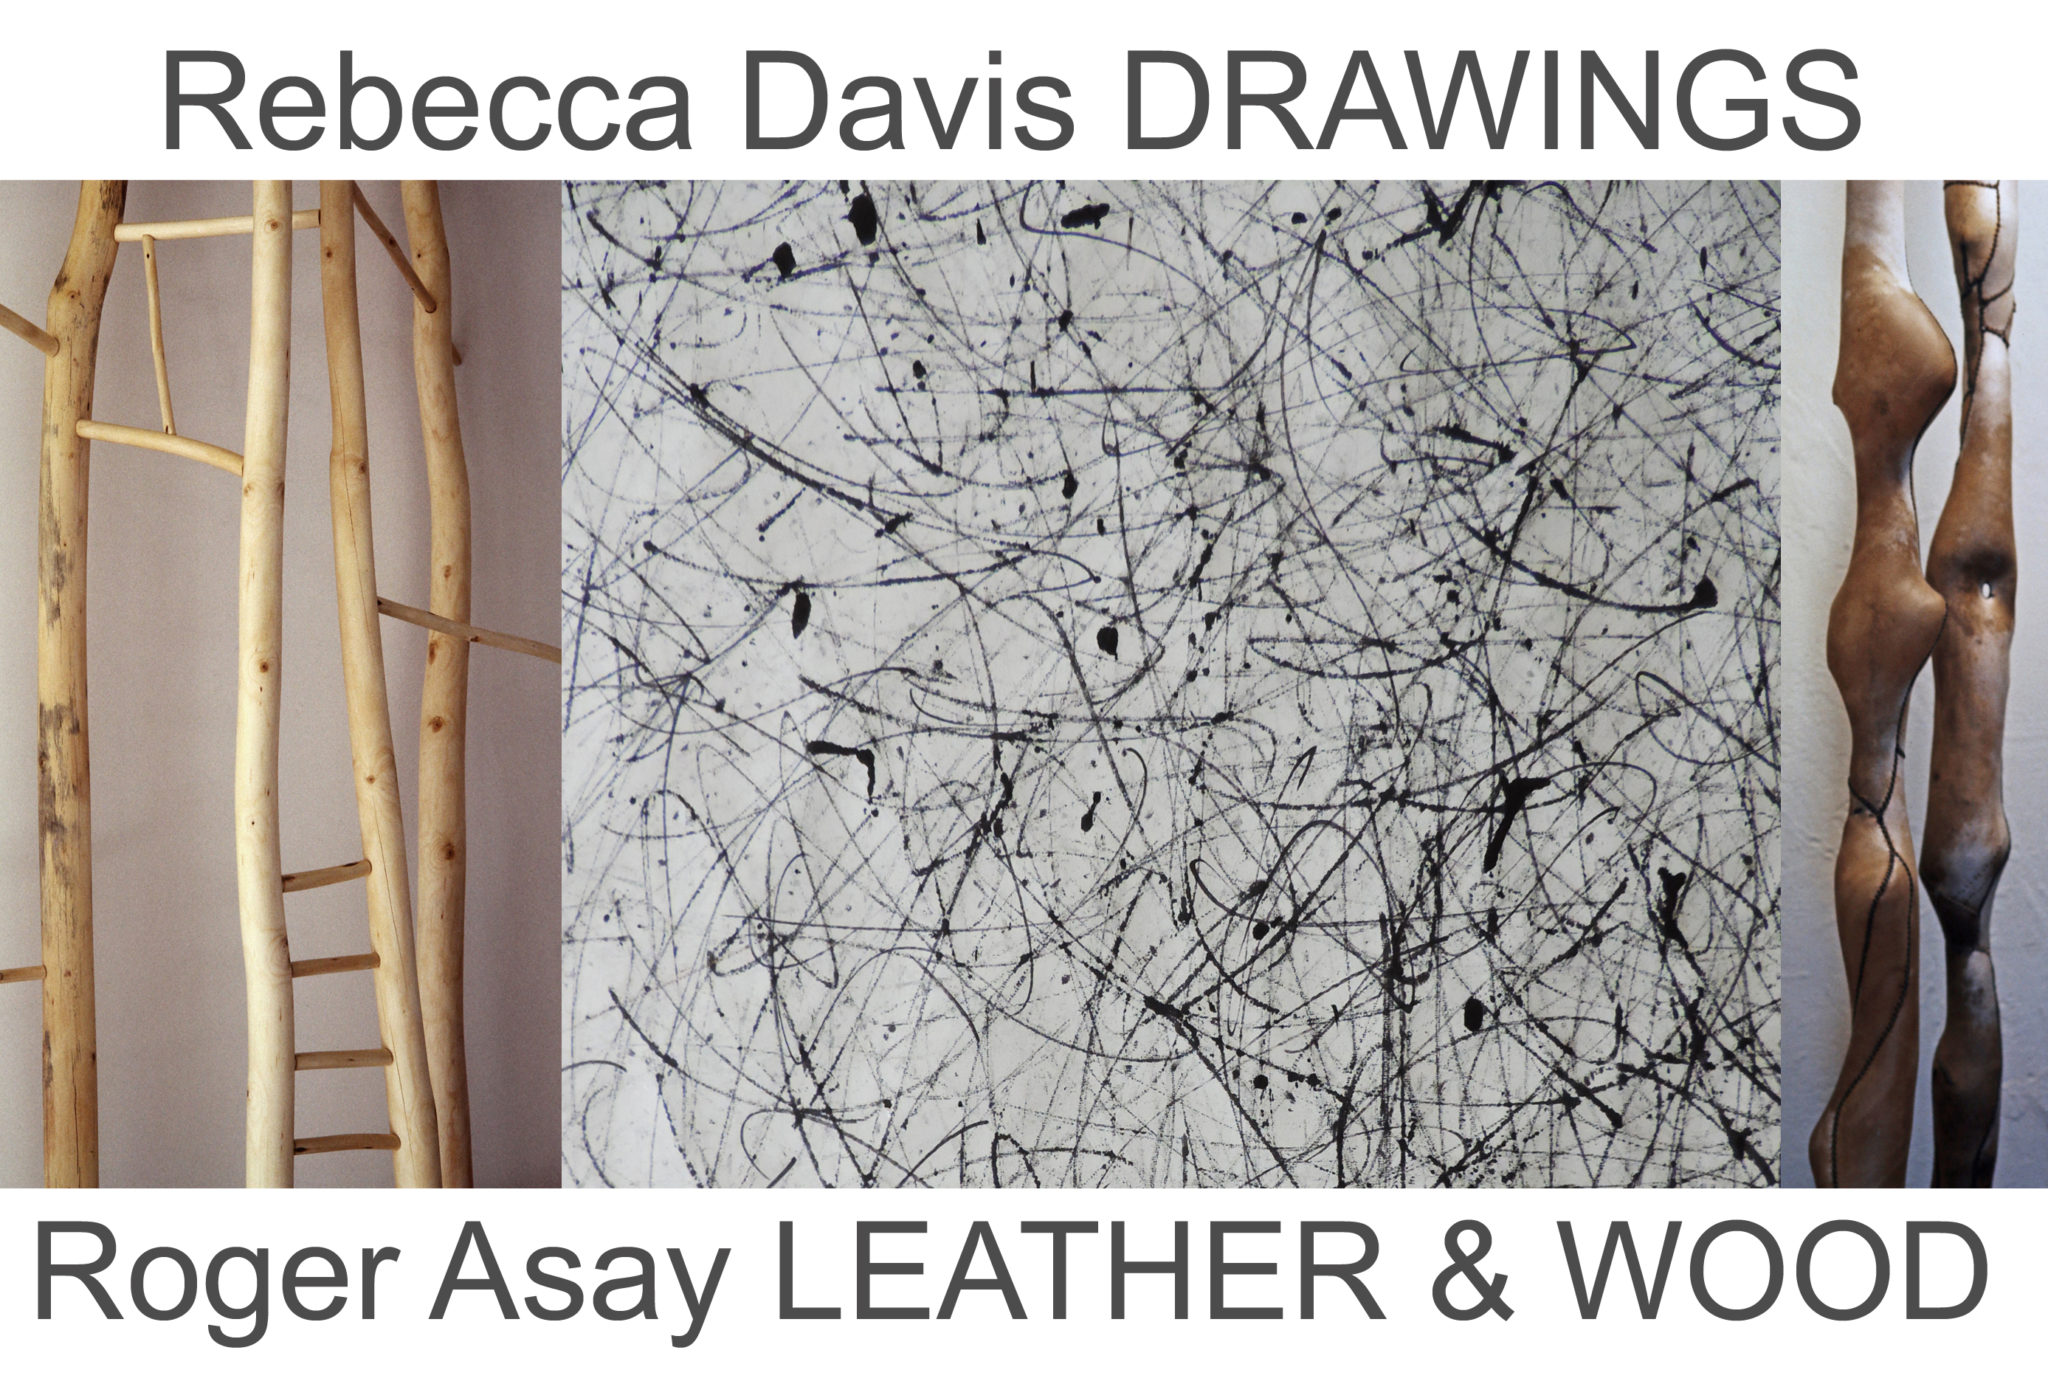 Roger Asay Leather & Wood Event Image